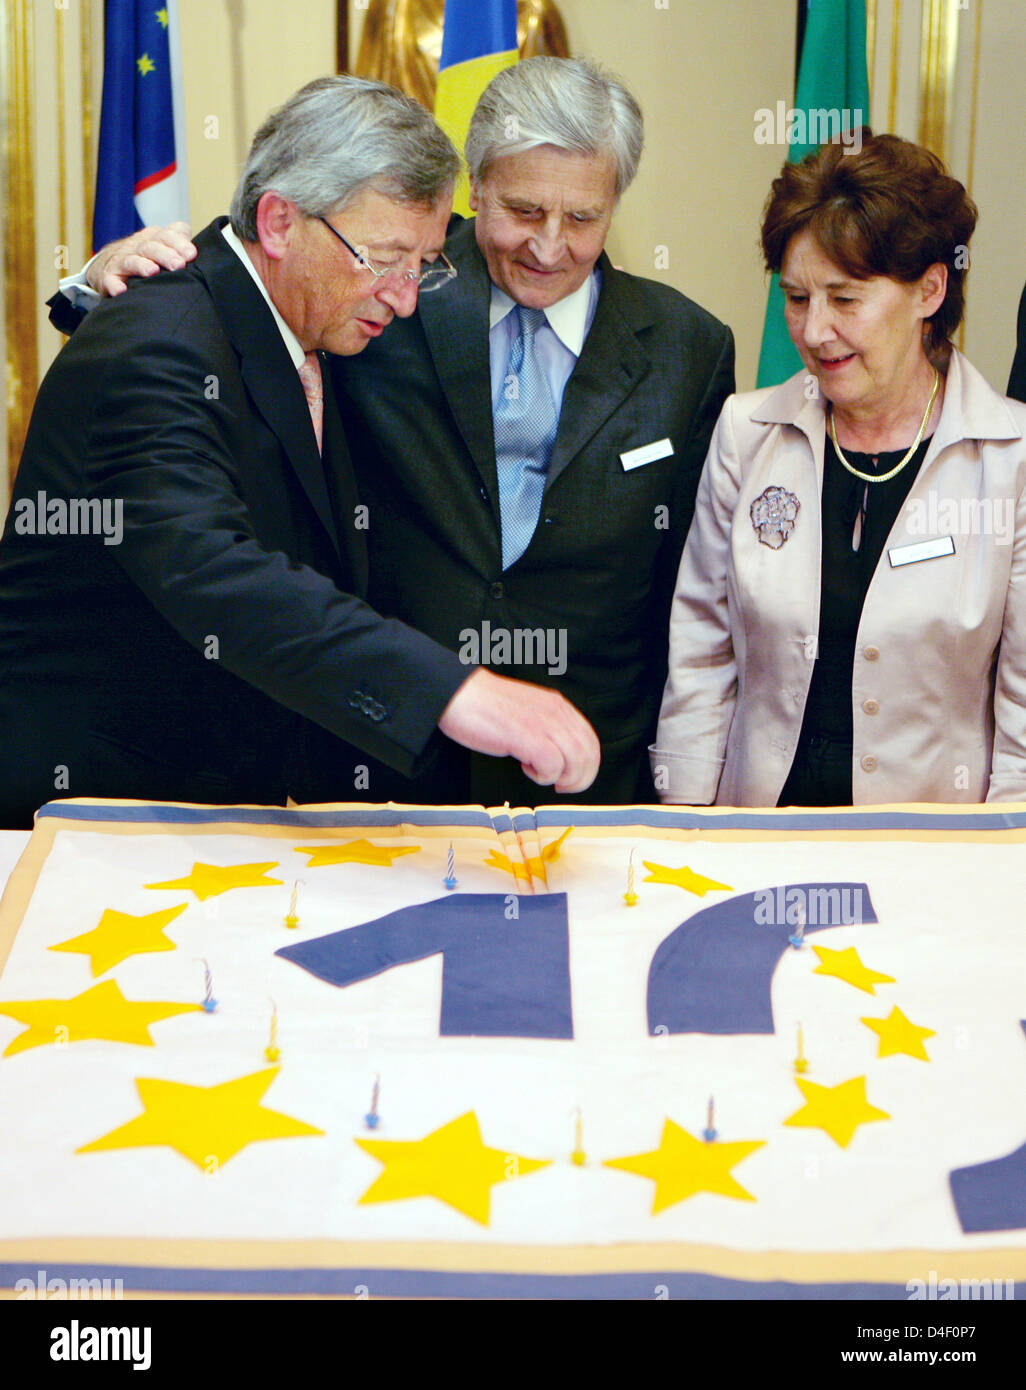 The President of the European Central Bank (ECB) Jean-Claude Trichet (C) is pictured with the Prime Minister of - Stock Image